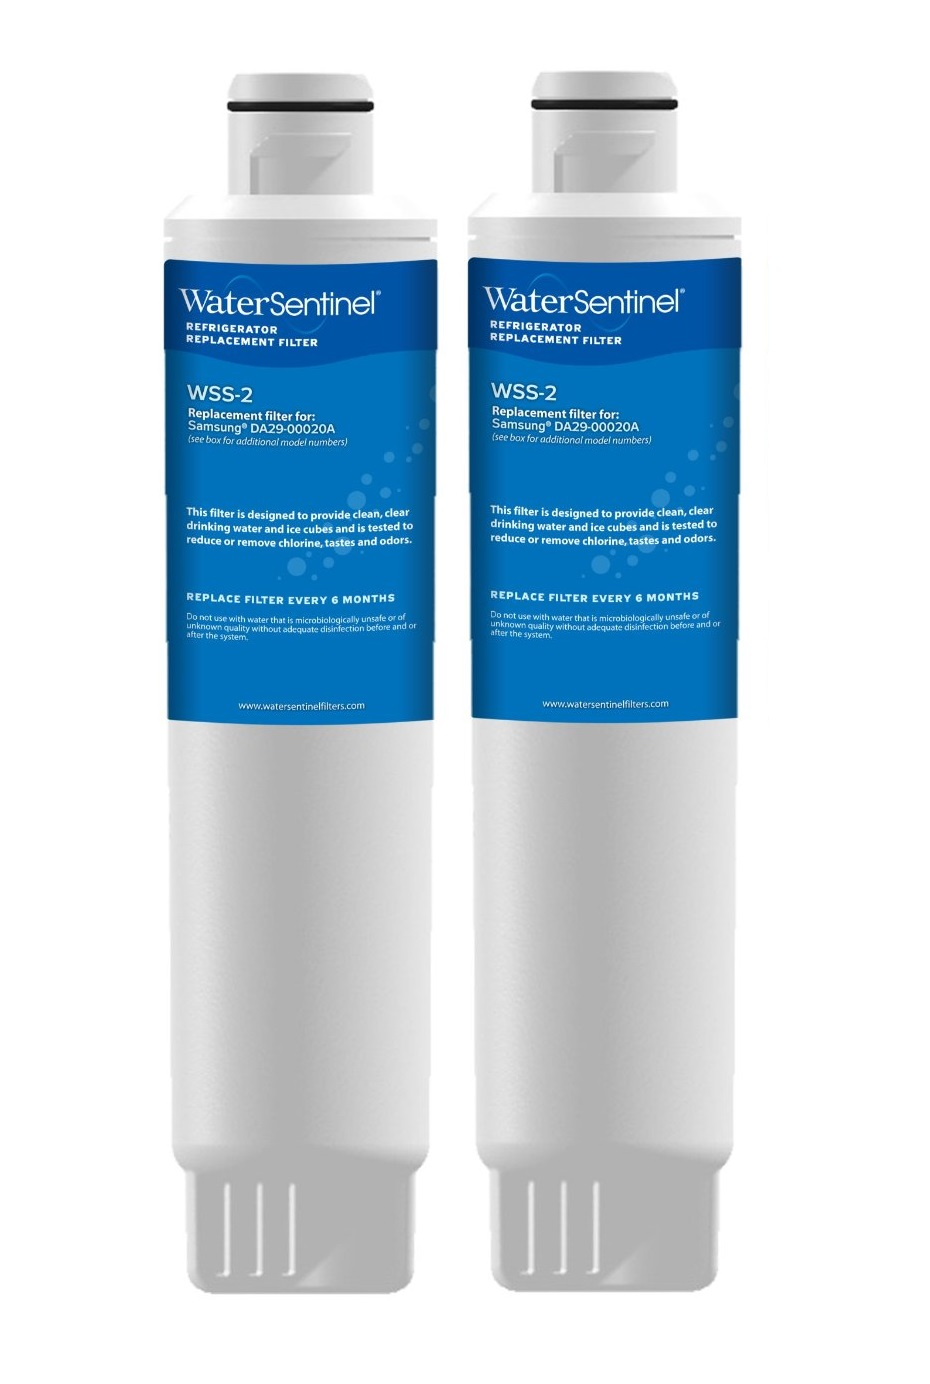 WSS-2 Water Sentinel Refrigerator Water Filter (2-Pack)